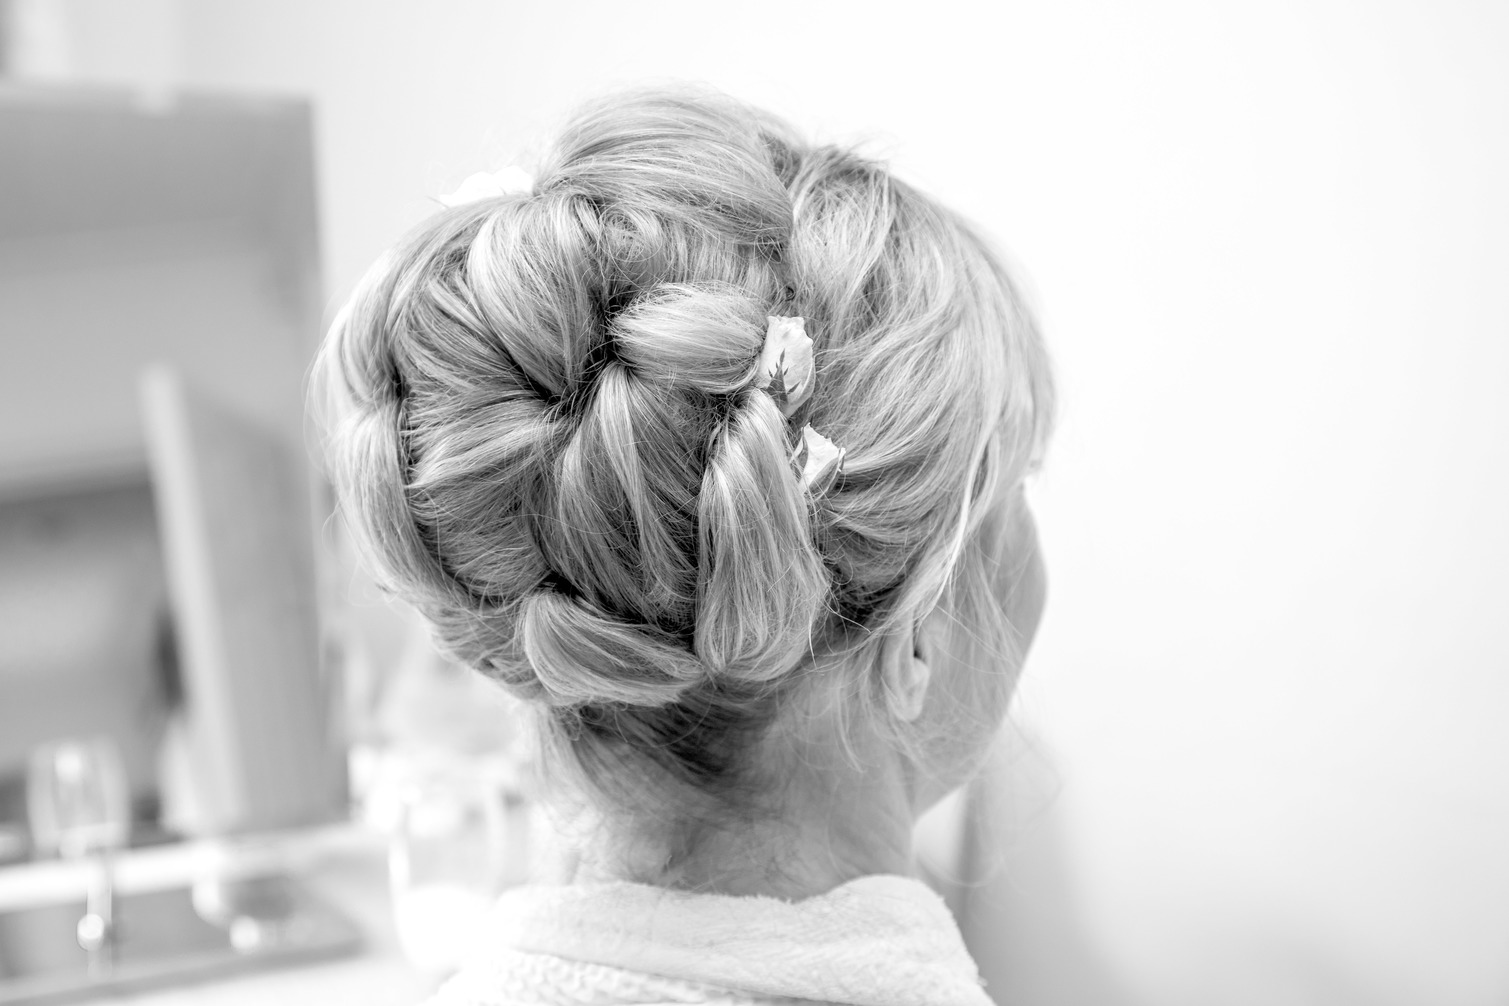 Wedding hair styles for short hair - Wedding Make Up and Hair ...